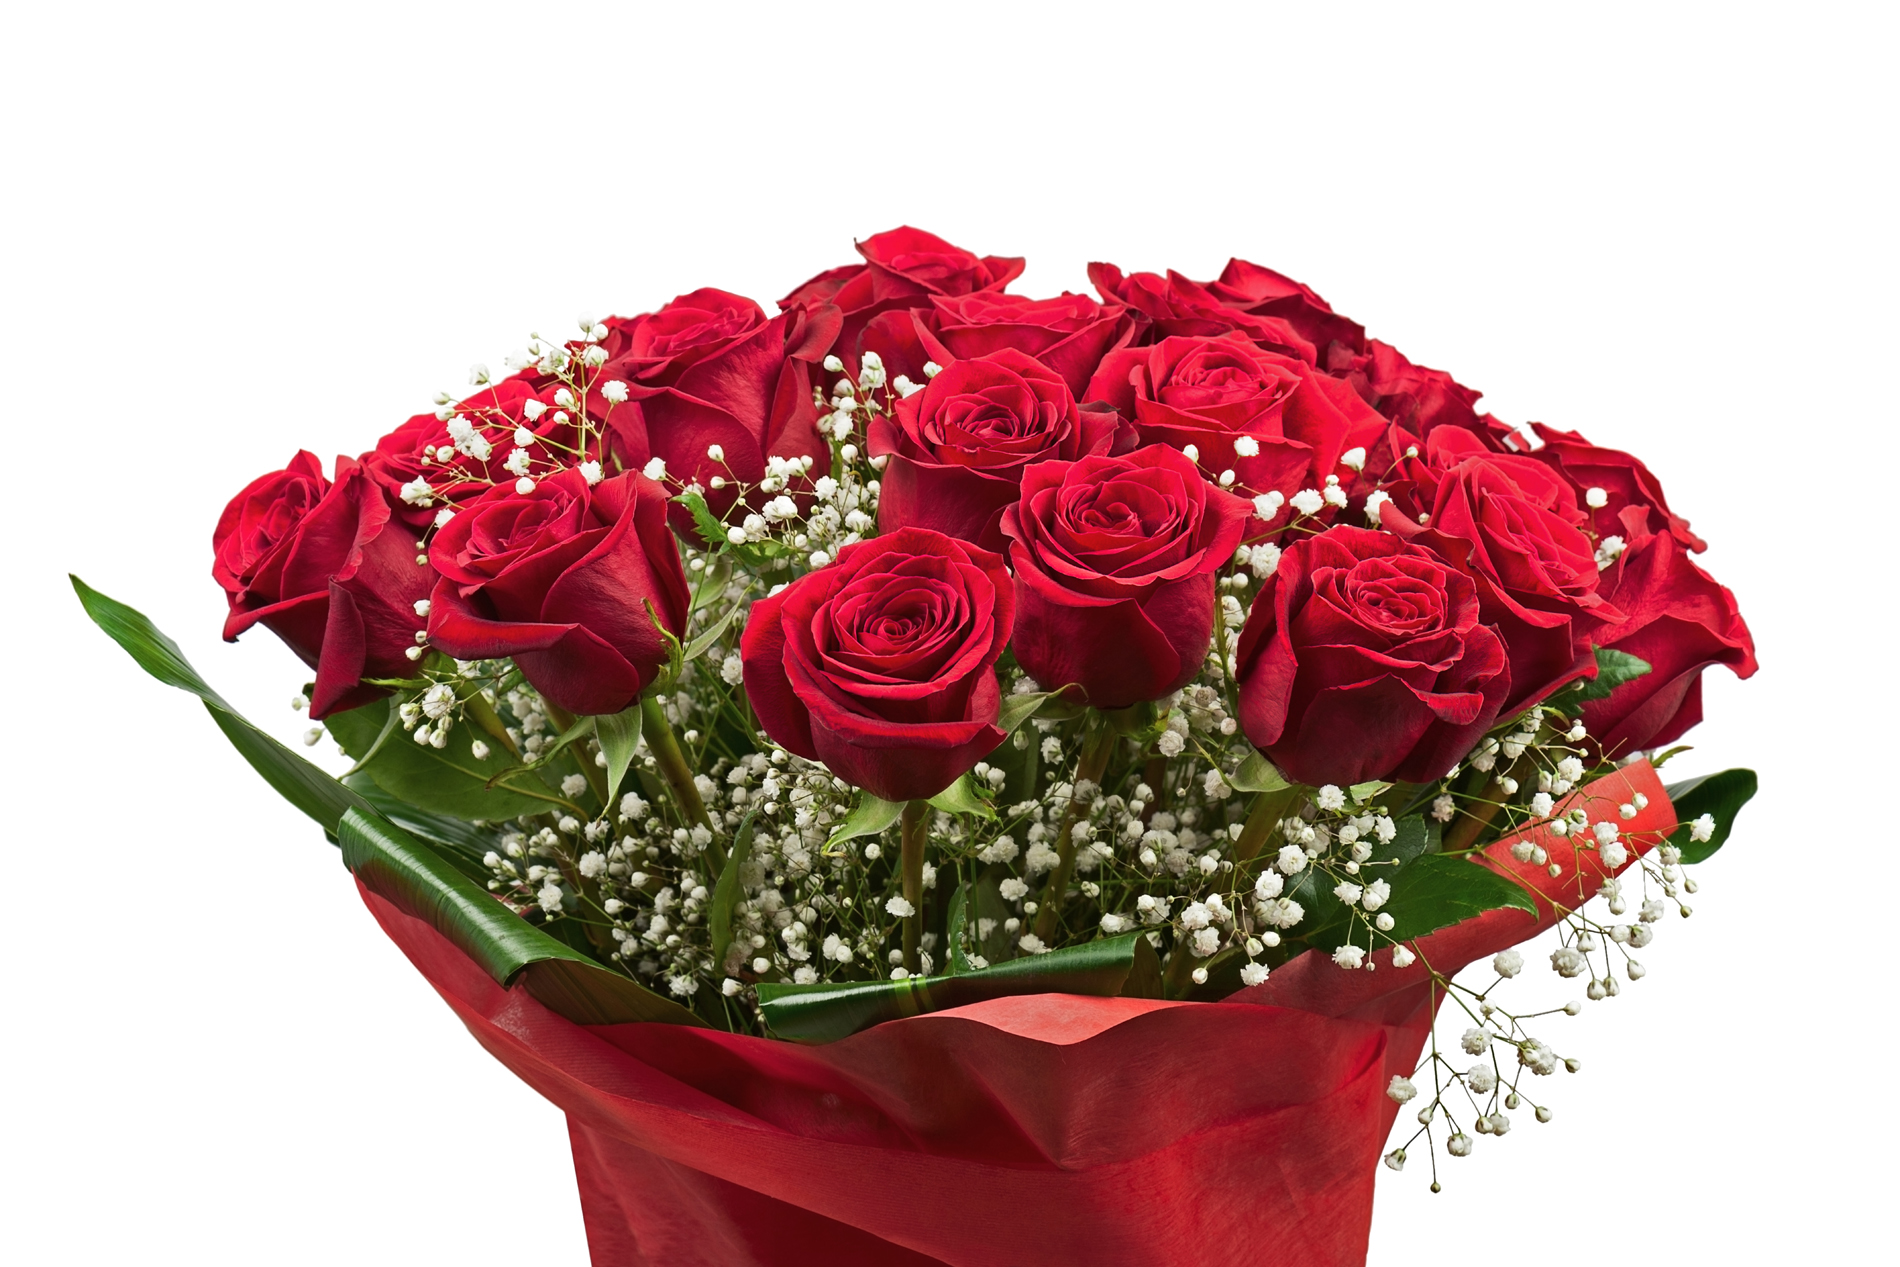 Bouquets of bright red 52638